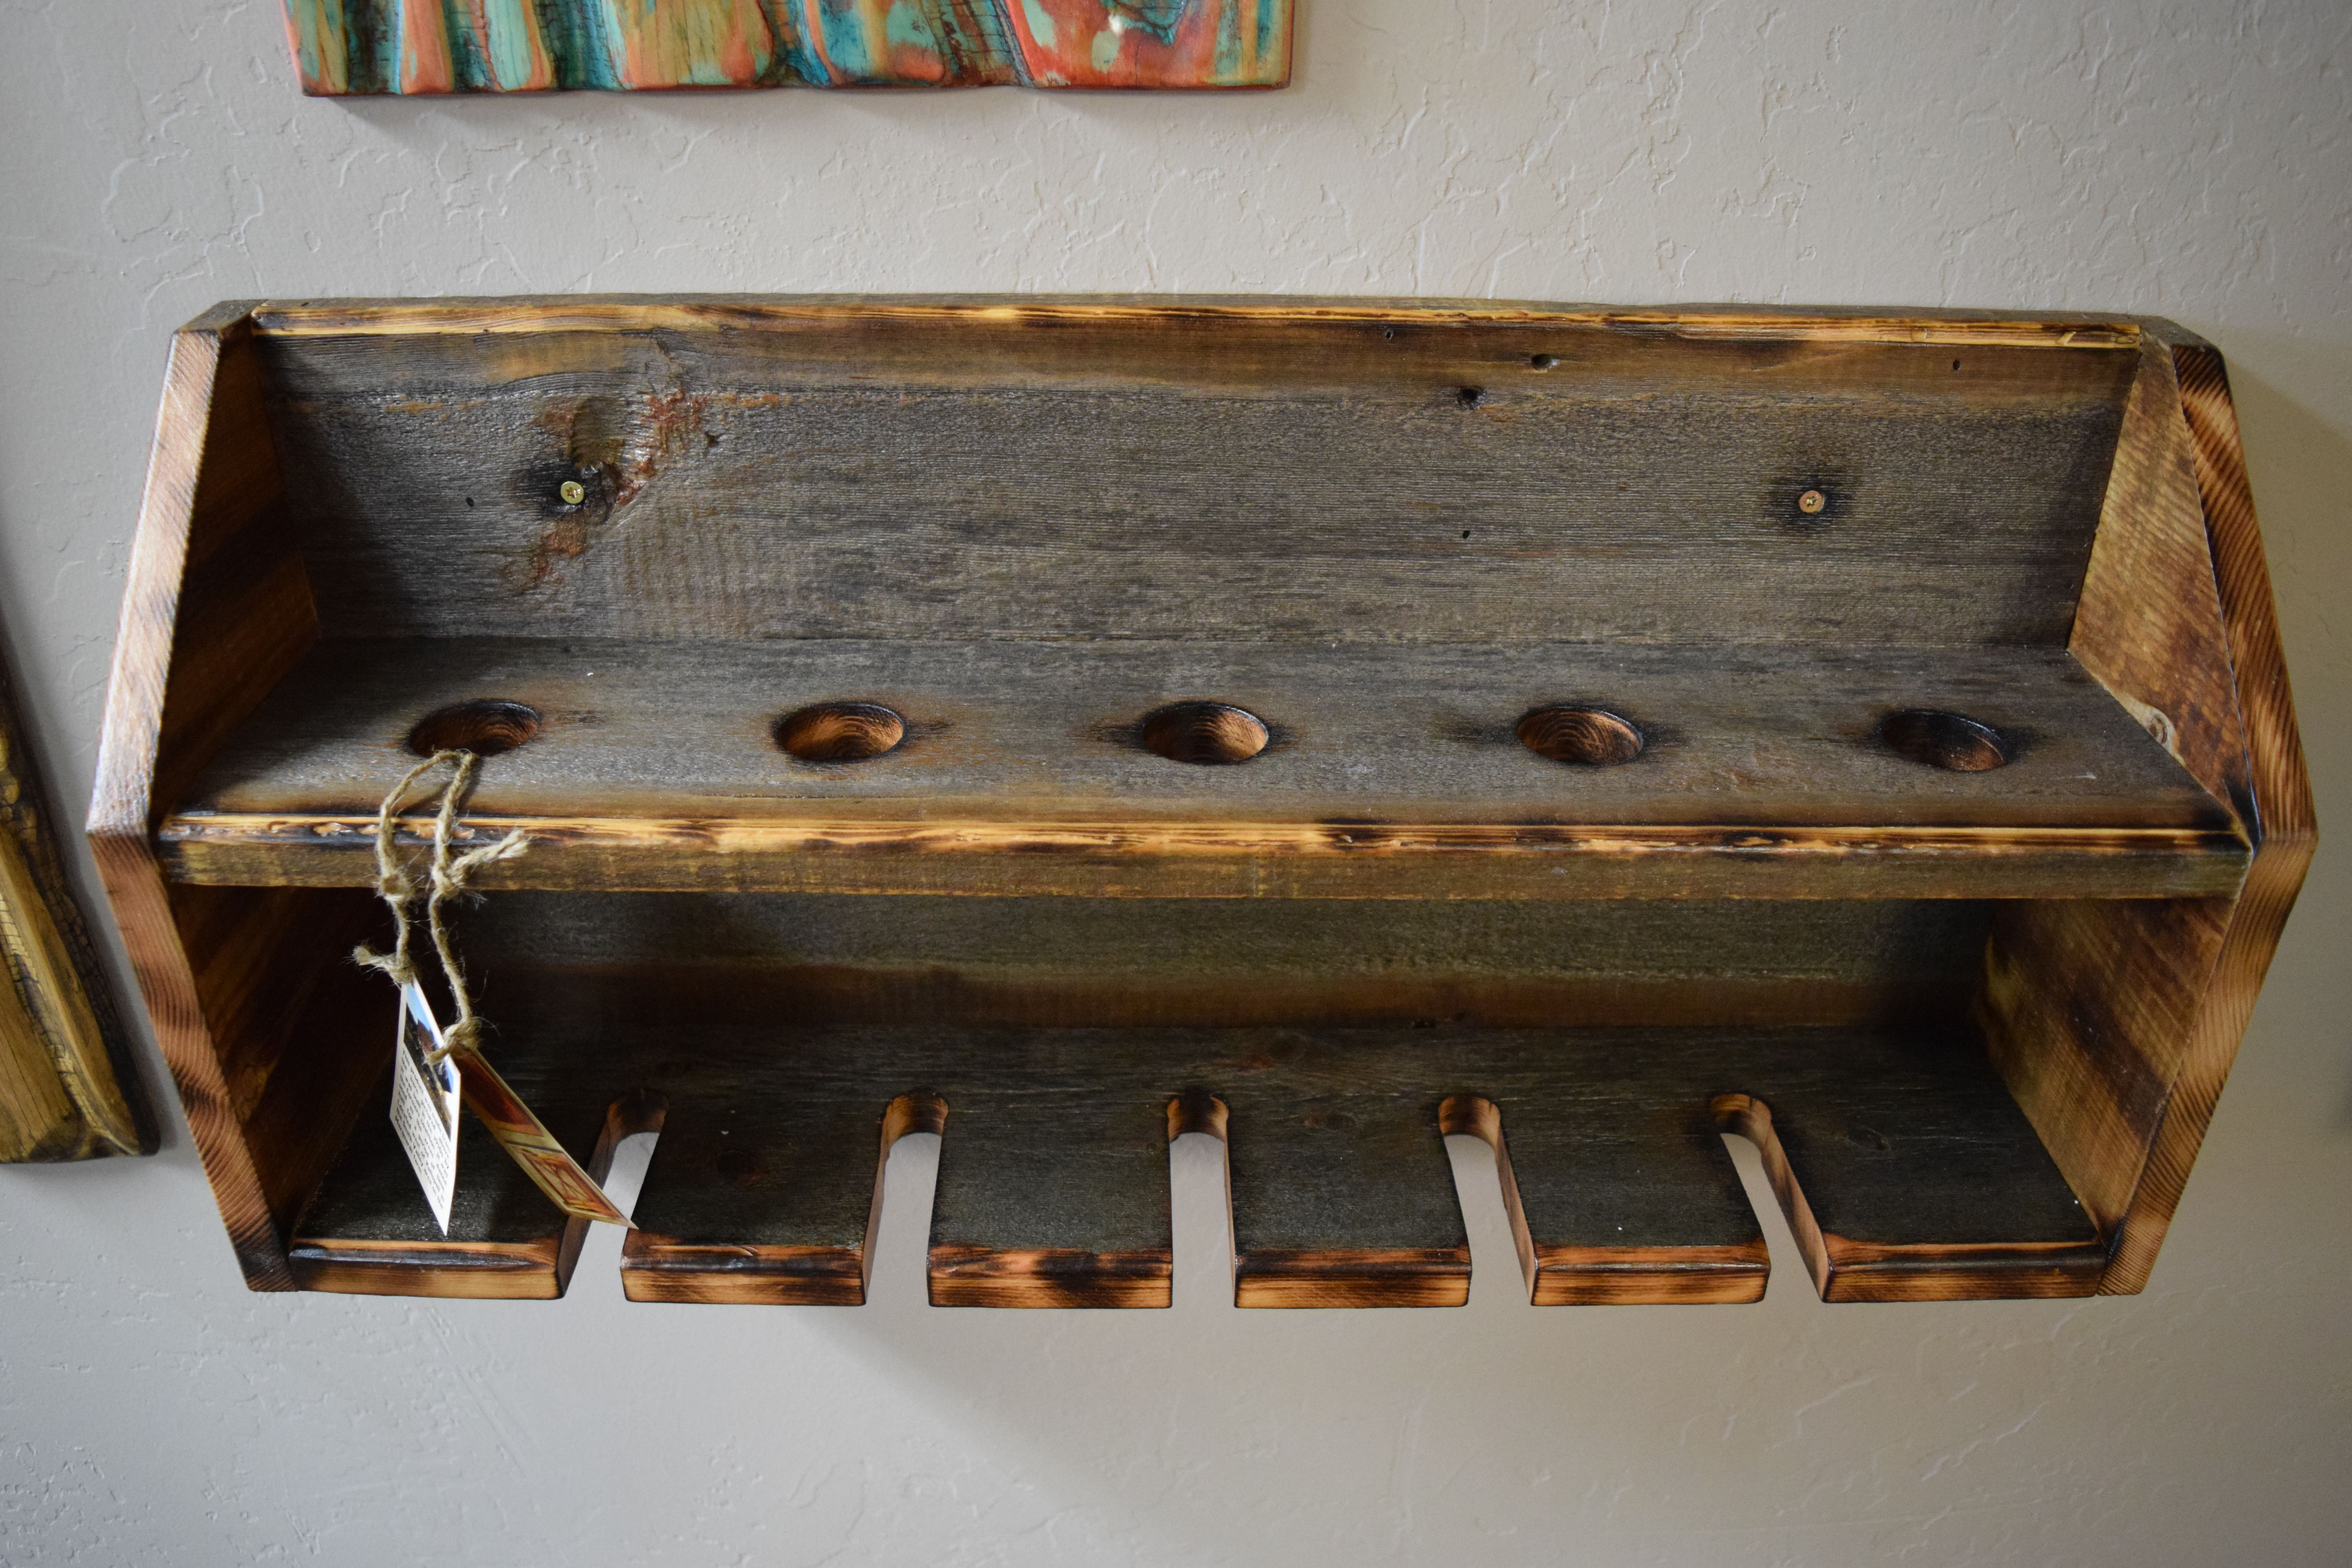 A Handmade Barn Wood Wine Rack Made To Order From Montana Stone Carving Custommade Com